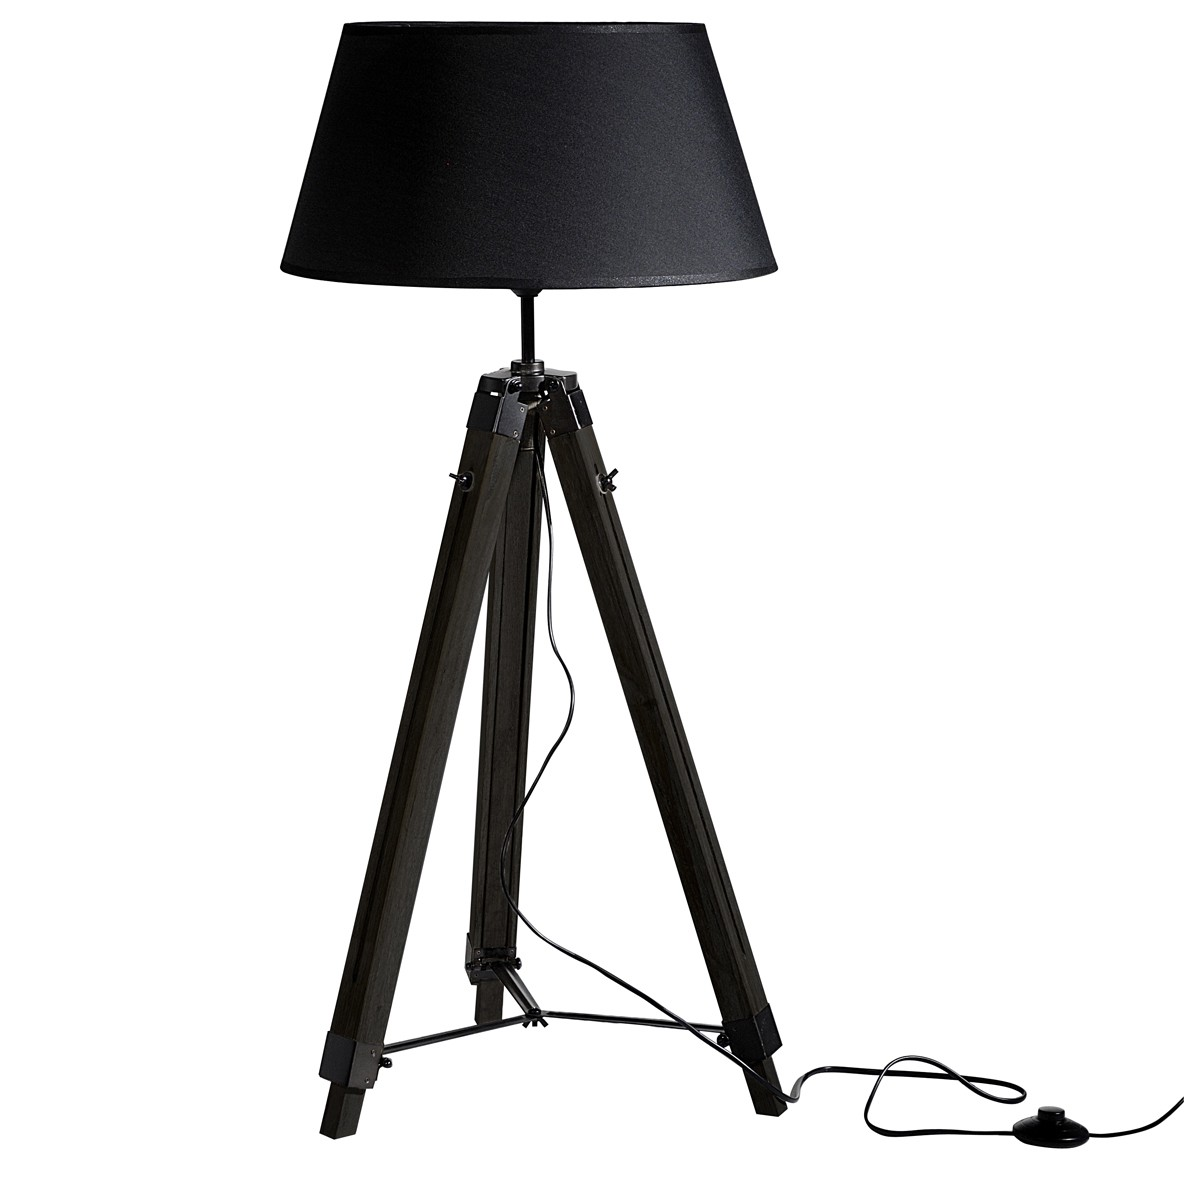 lampadaire tr pied navy noir koya design. Black Bedroom Furniture Sets. Home Design Ideas